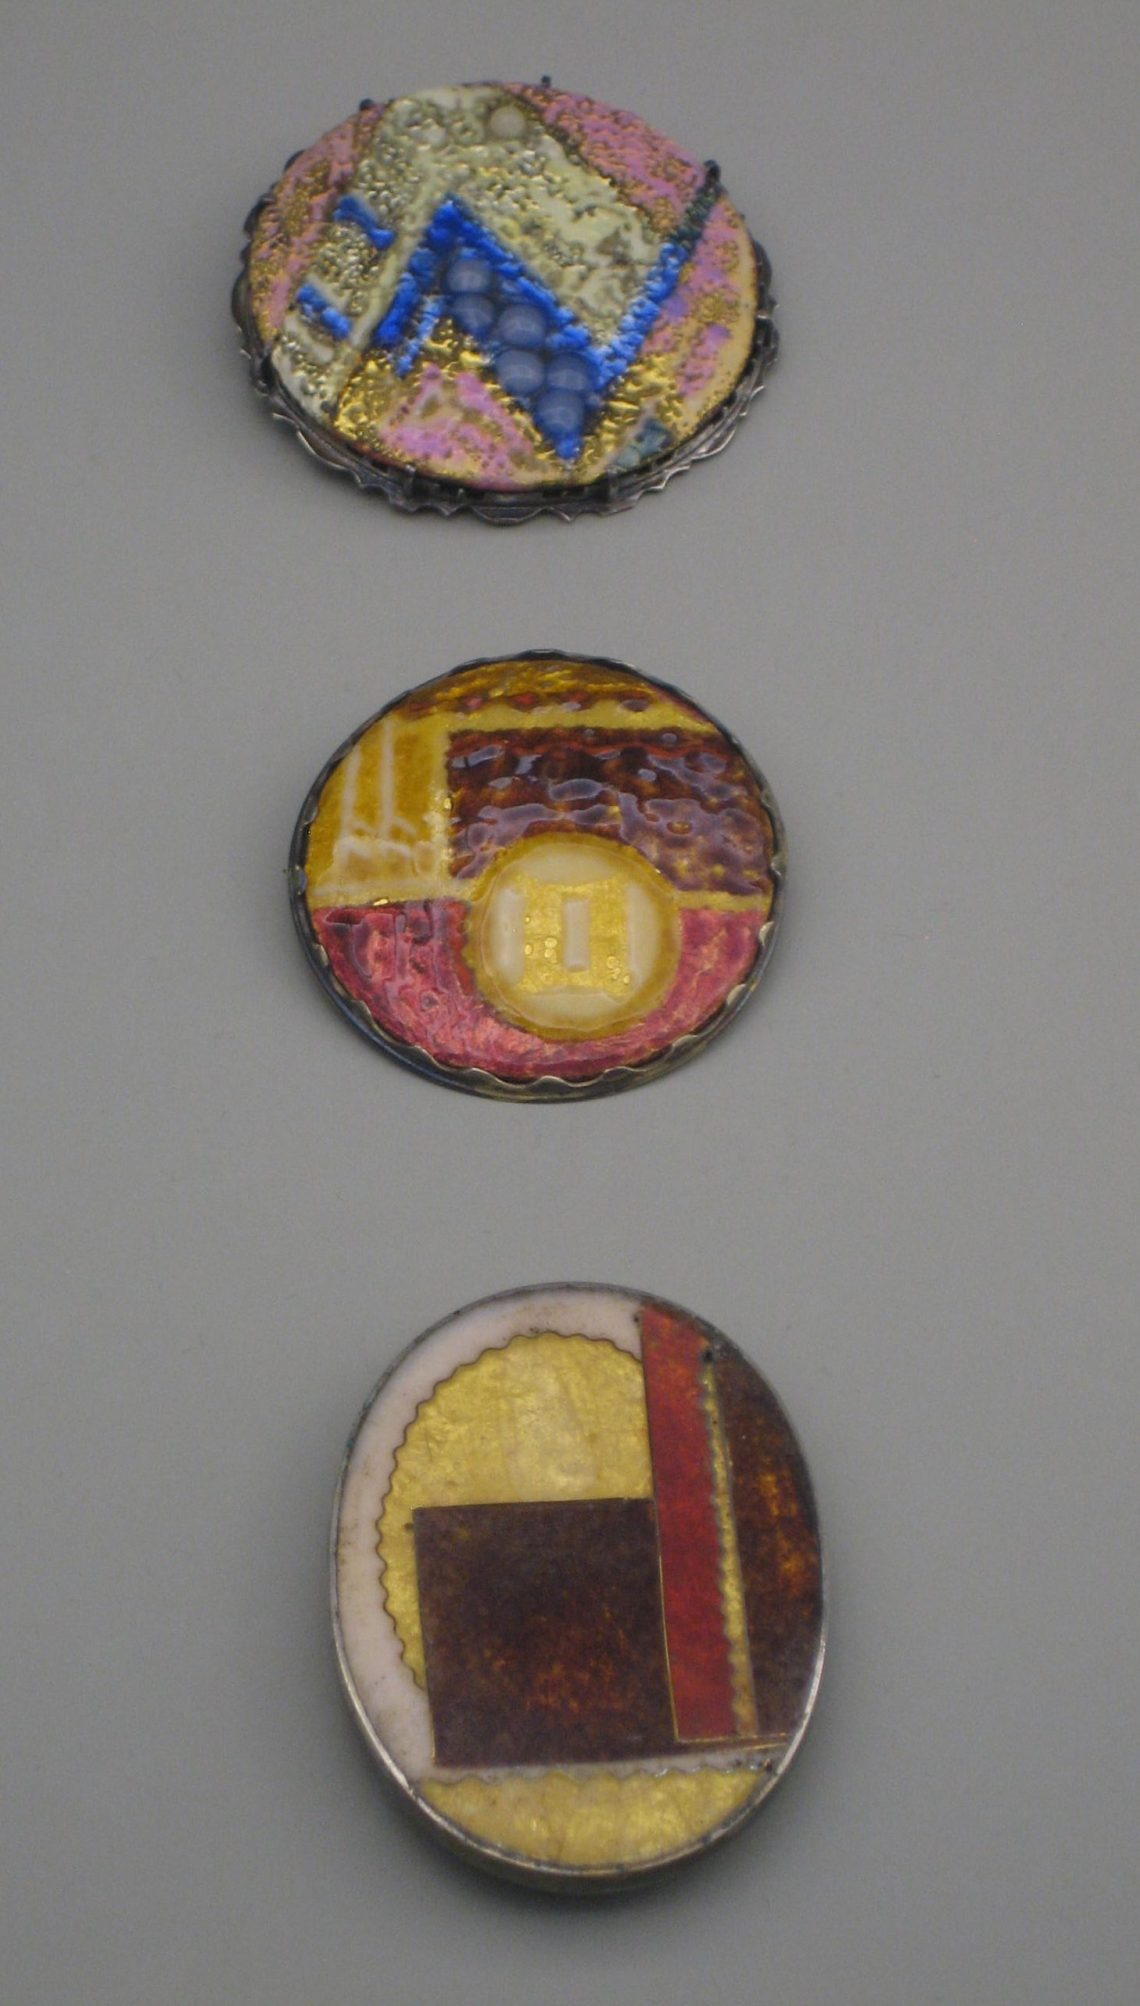 Curt Hasenohr, broches, circa 1925-1927. Collectie Grassimuseum. Foto Esther Doornbusch, mei 2018, CC BY 4.0